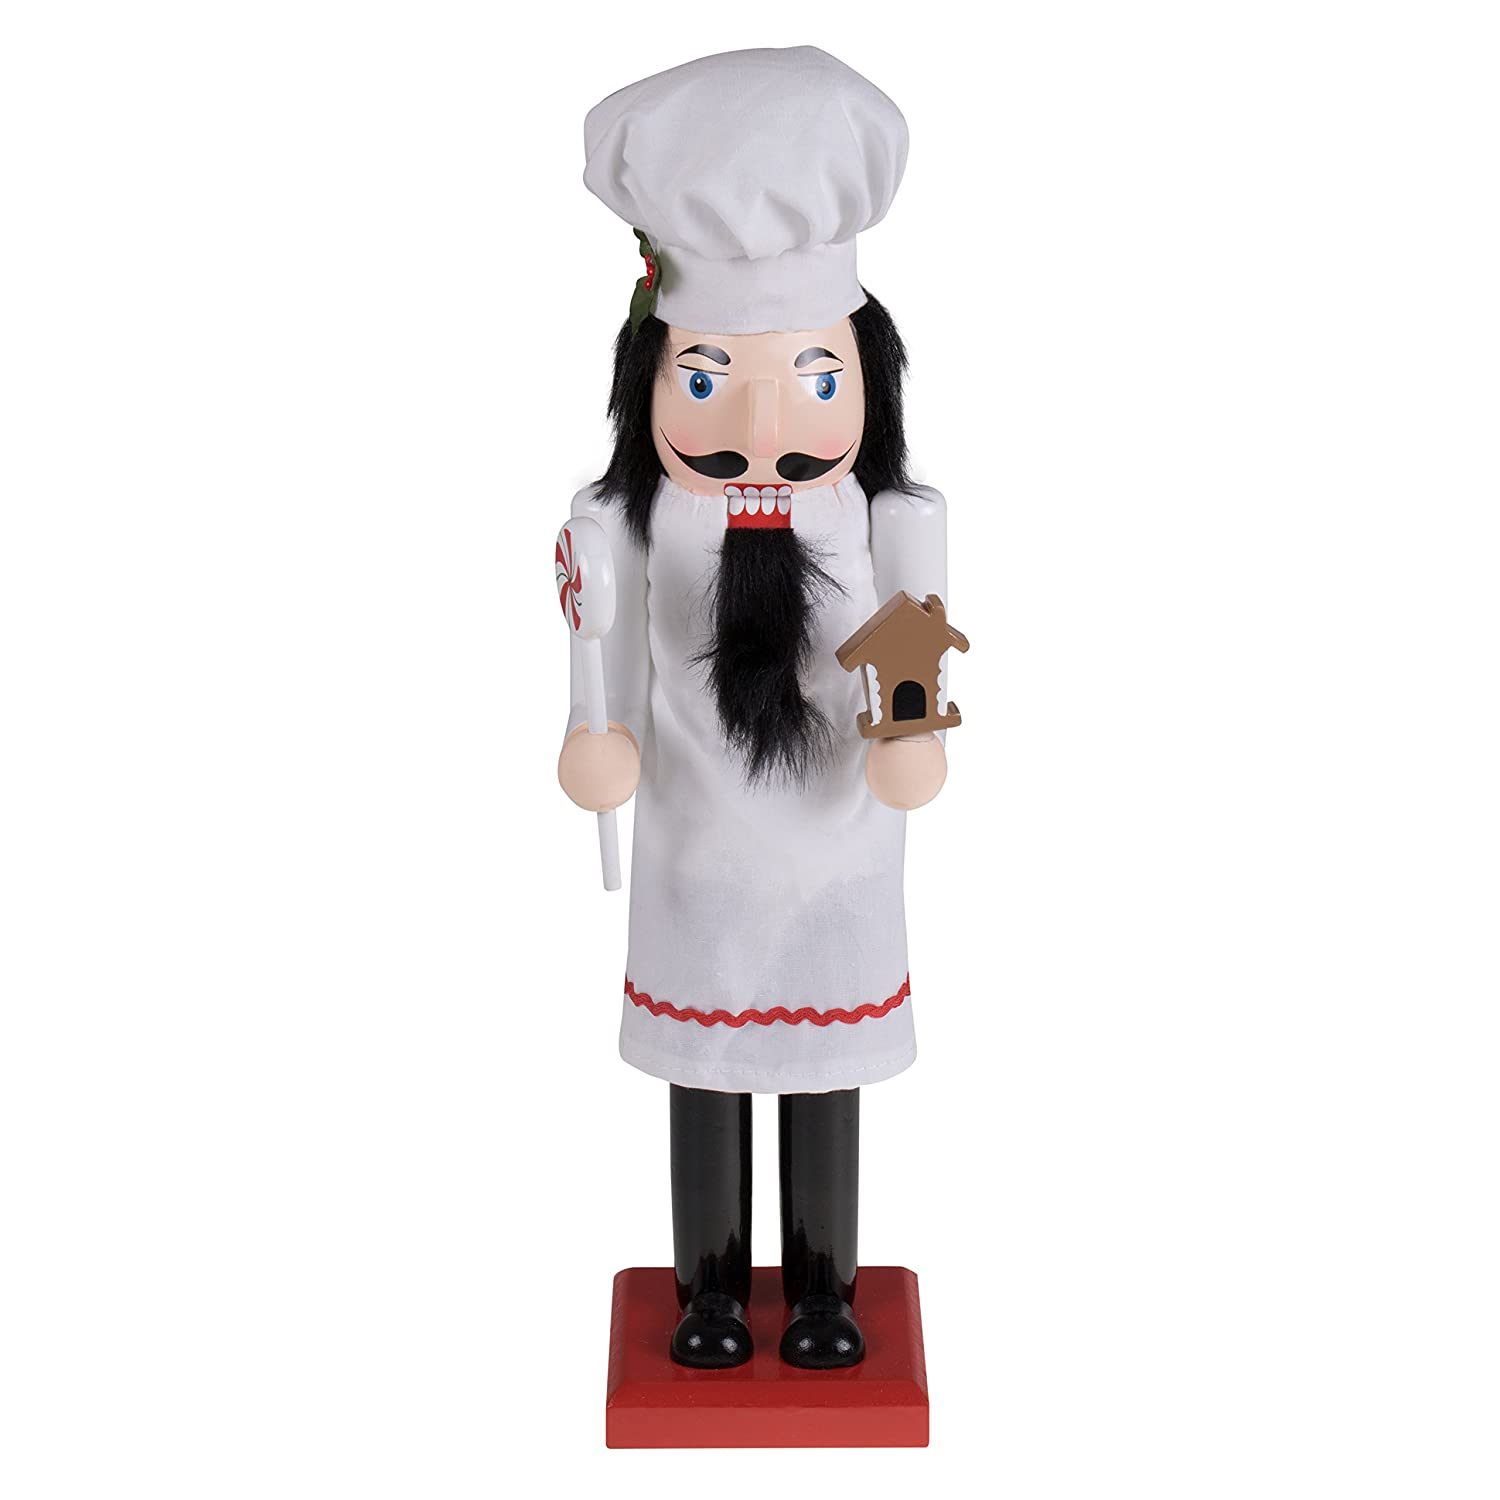 "Baker Chef Nutcracker by Clever Creations | Baker Wearing White Apron with Red Trim and White Chefs Hat | Collectable Festive Christmas Decor | 100% Wood Perfect for Shelves and Tables | 15"" Tall"